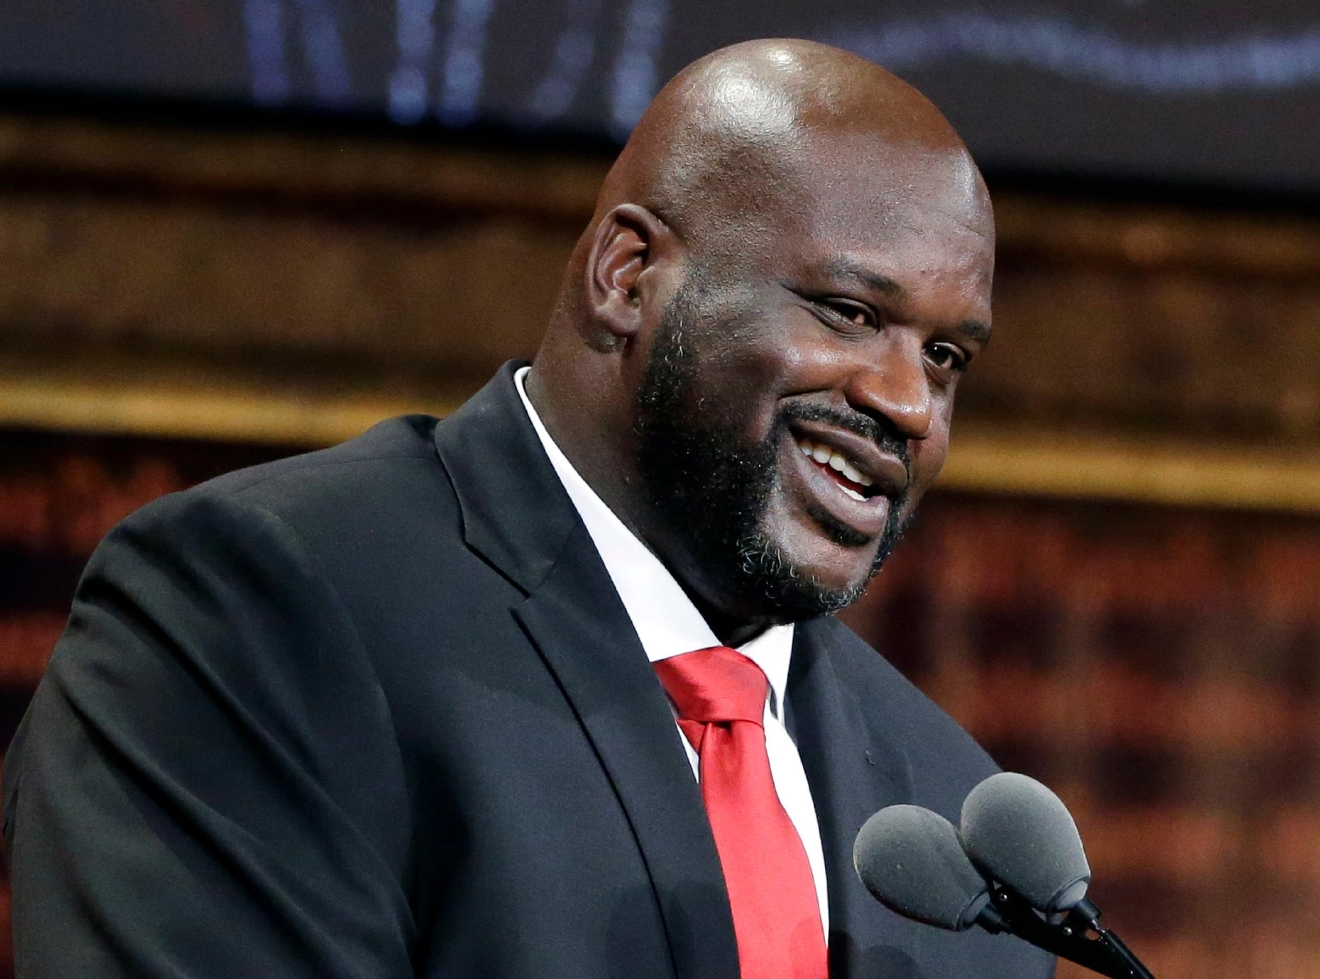 FILE - In this Sept. 9, 2016, file photo, basketball Hall of Fame inductee Shaquille O'Neal speaks during induction ceremonies in Springfield, Mass. (AP Photo/Elise Amendola, File)